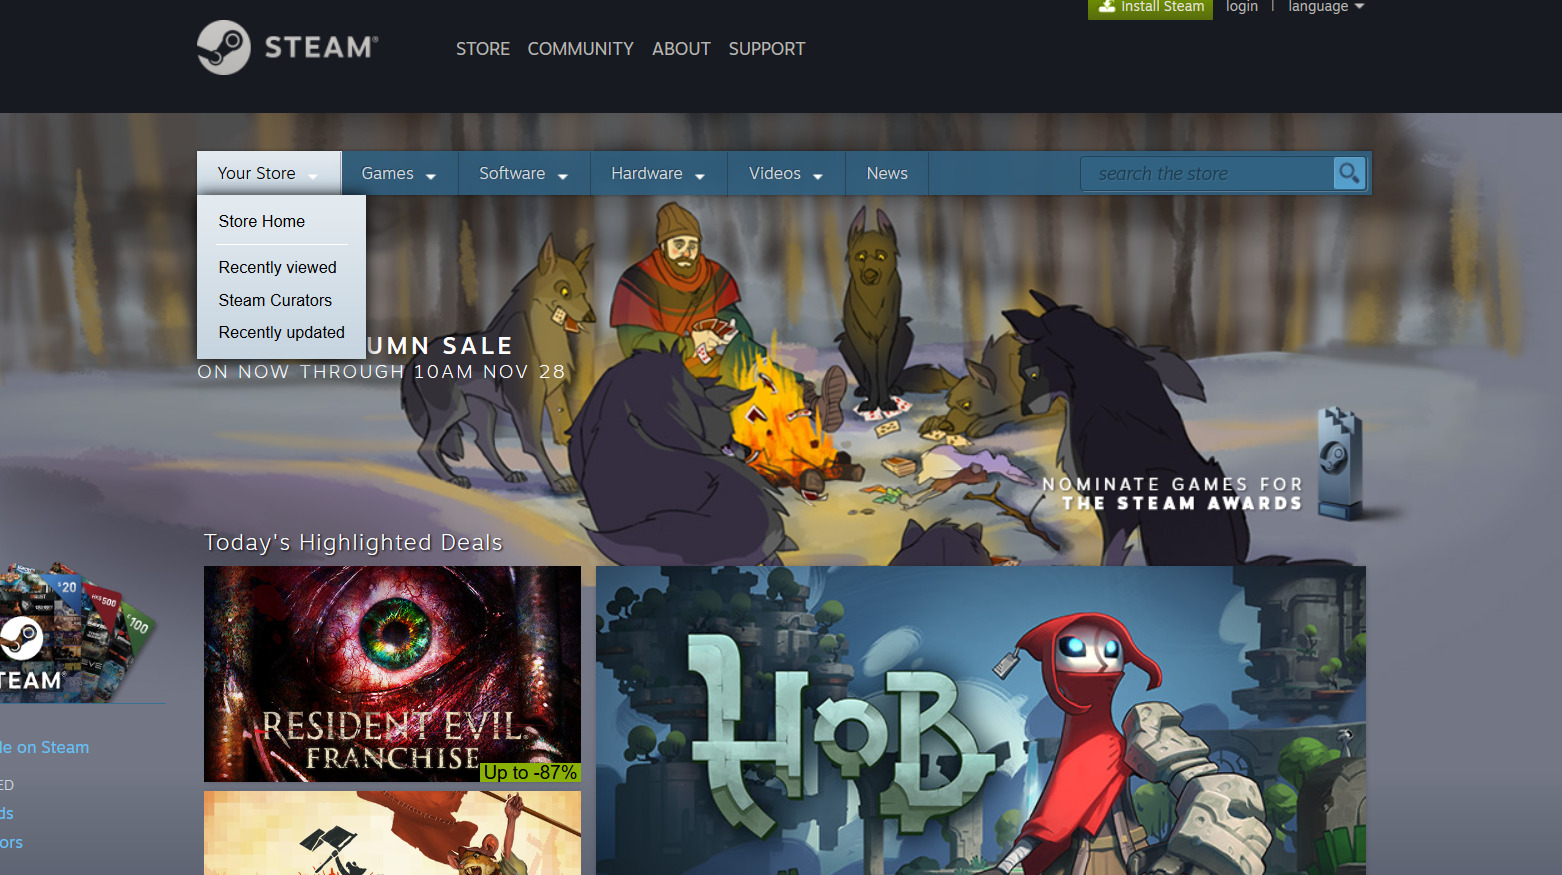 Steam Autumn Sale 2017 - all the best deals